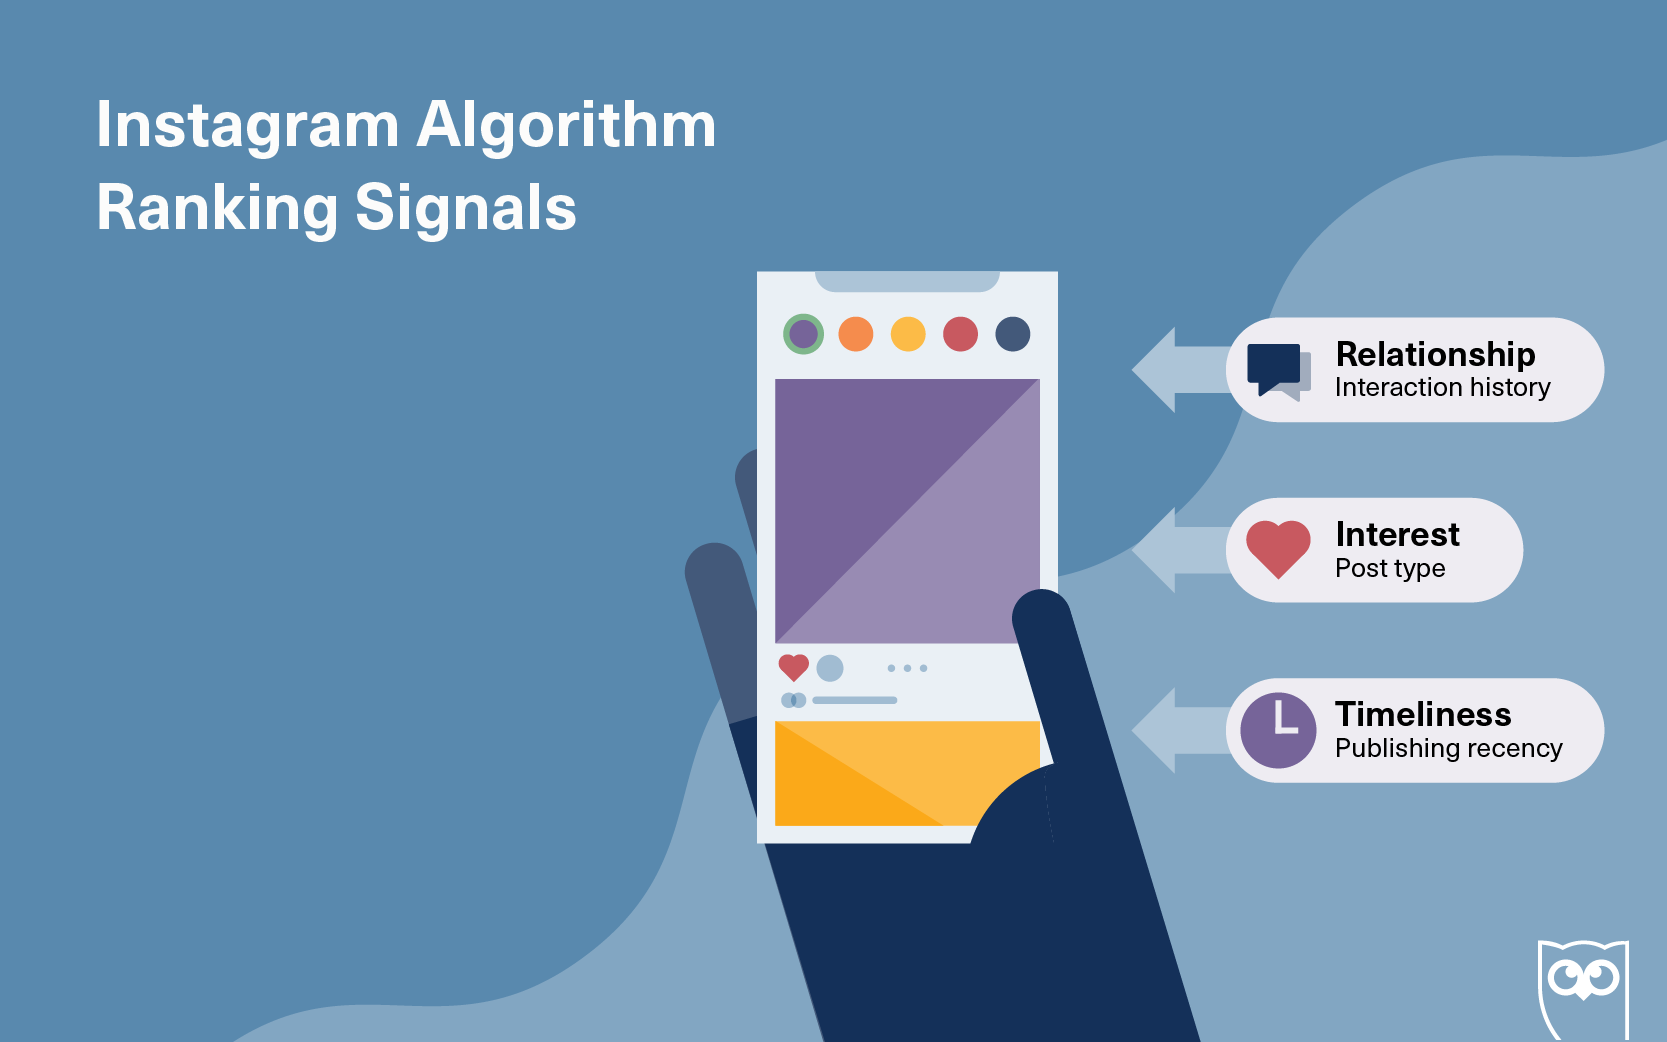 Top 3 Instagram algorithm ranking signals: Relationship, interest, and recency